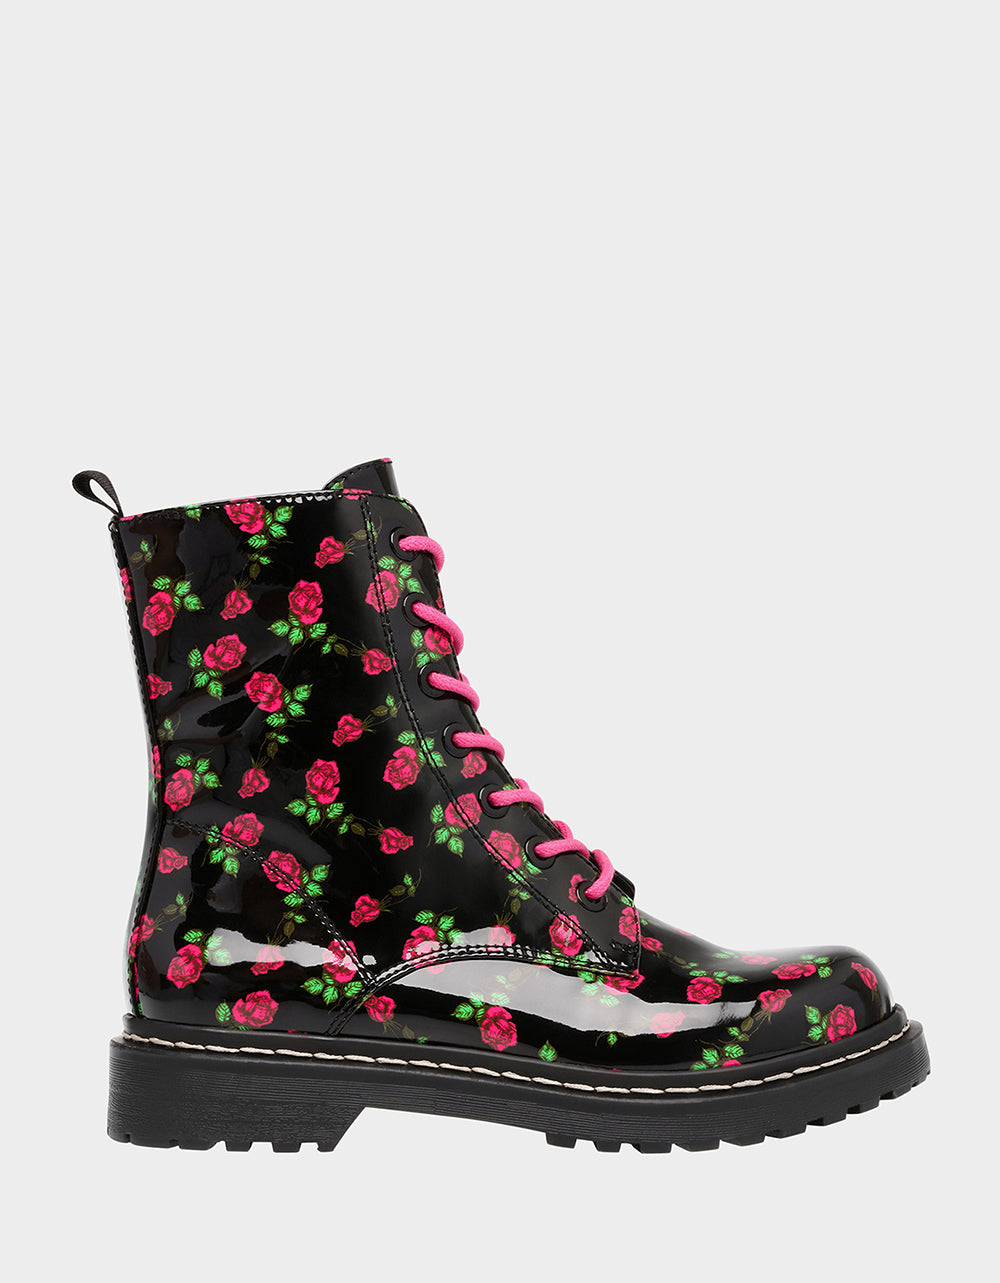 ELITE-BJ BLACK MULTI - SHOES - Betsey Johnson